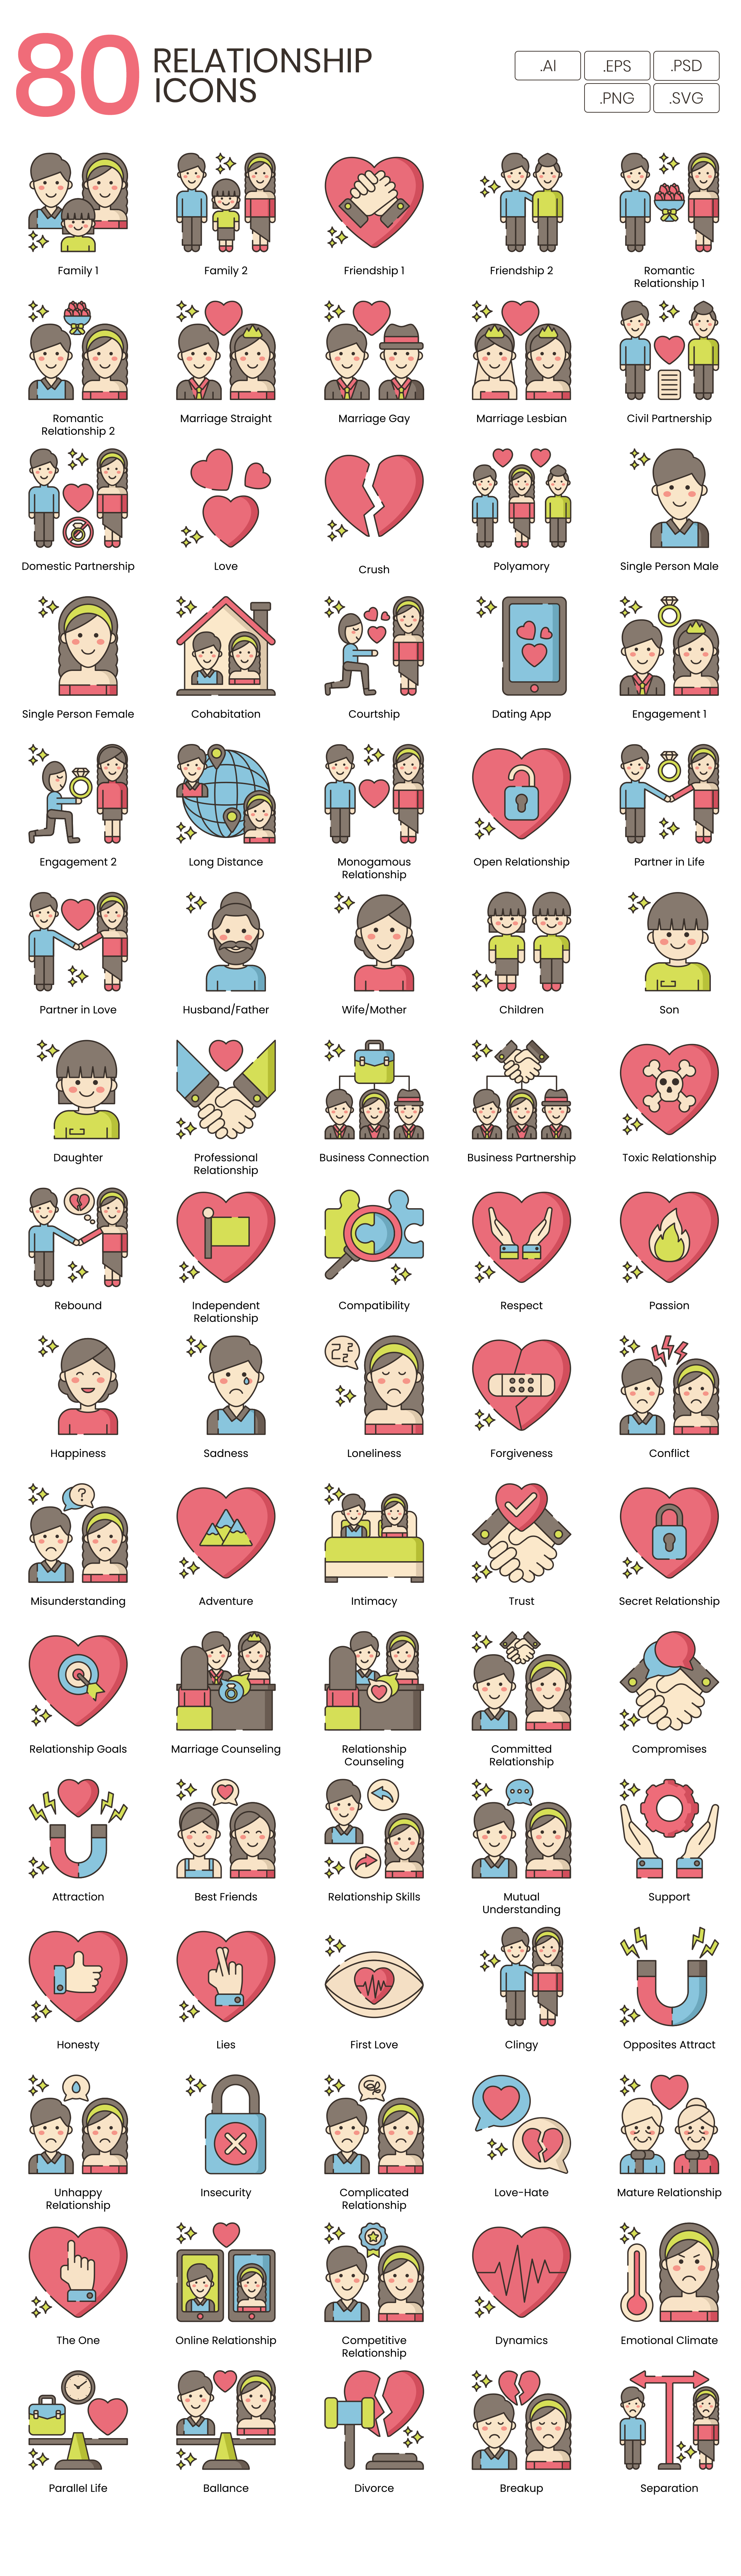 Relationships Vector Icons Preview Image